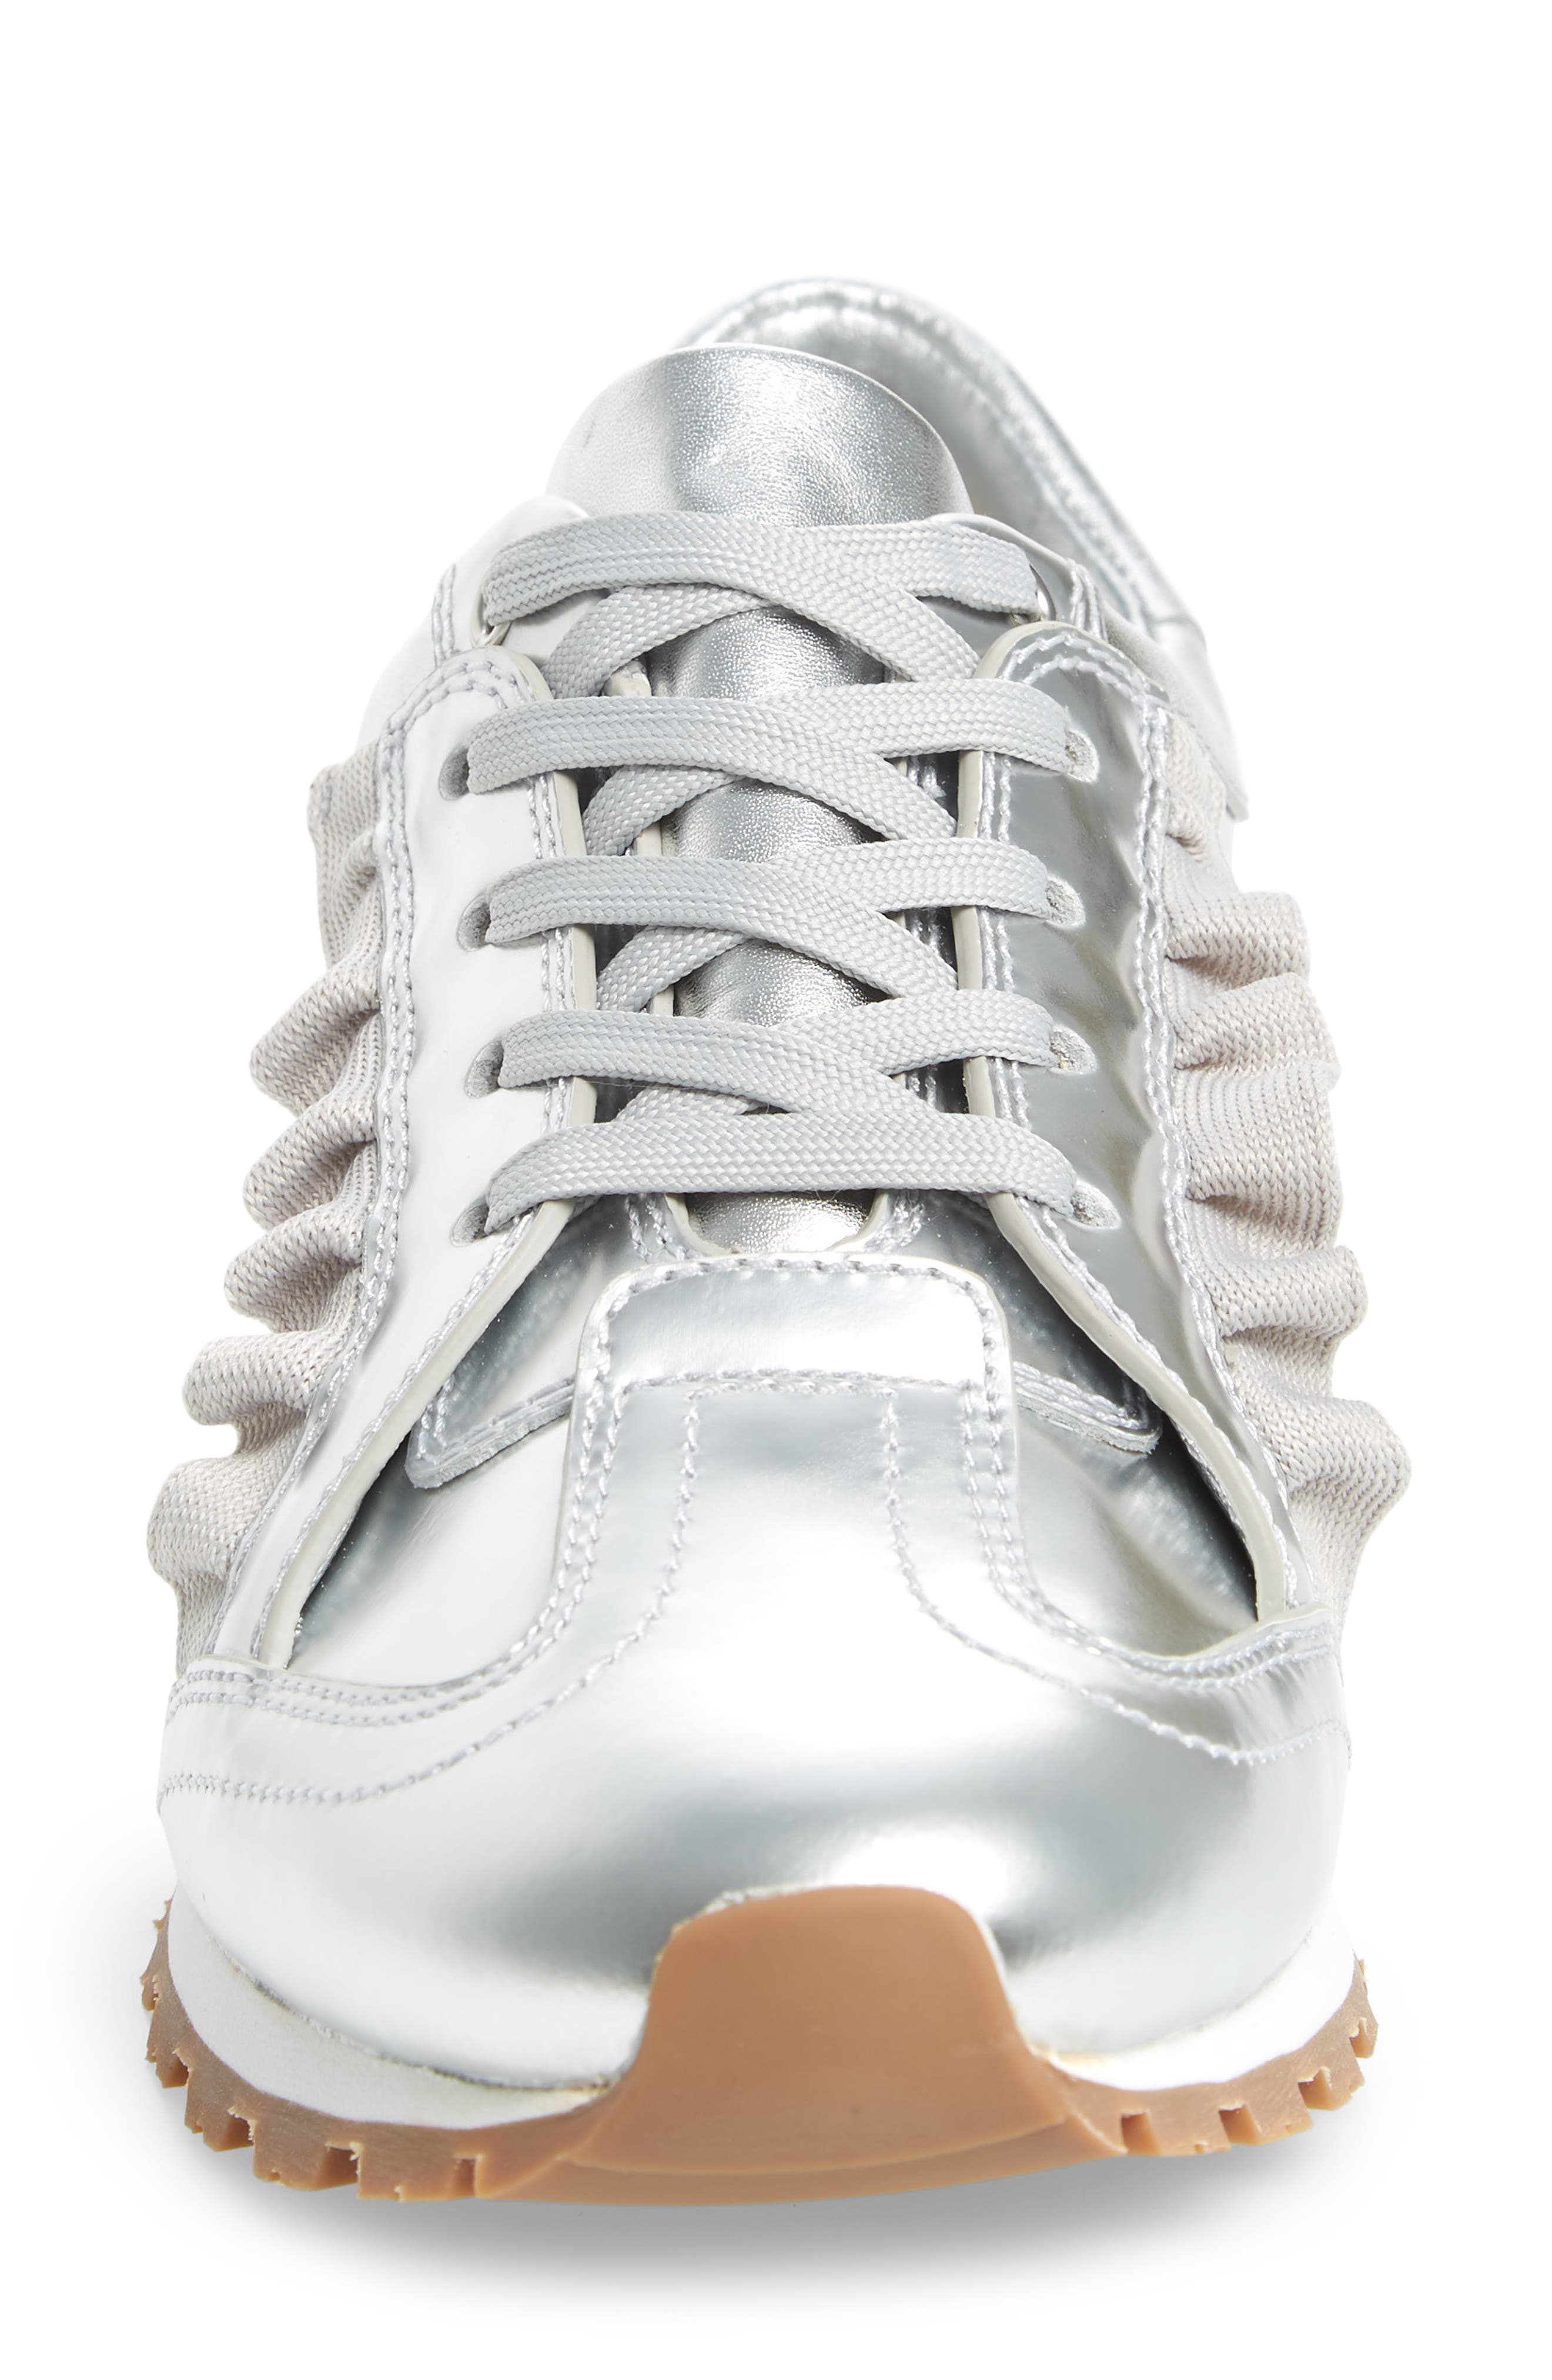 TORY SPORT,                             Ruffle Sneaker,                             Alternate thumbnail 4, color,                             SILVER/ GRAY